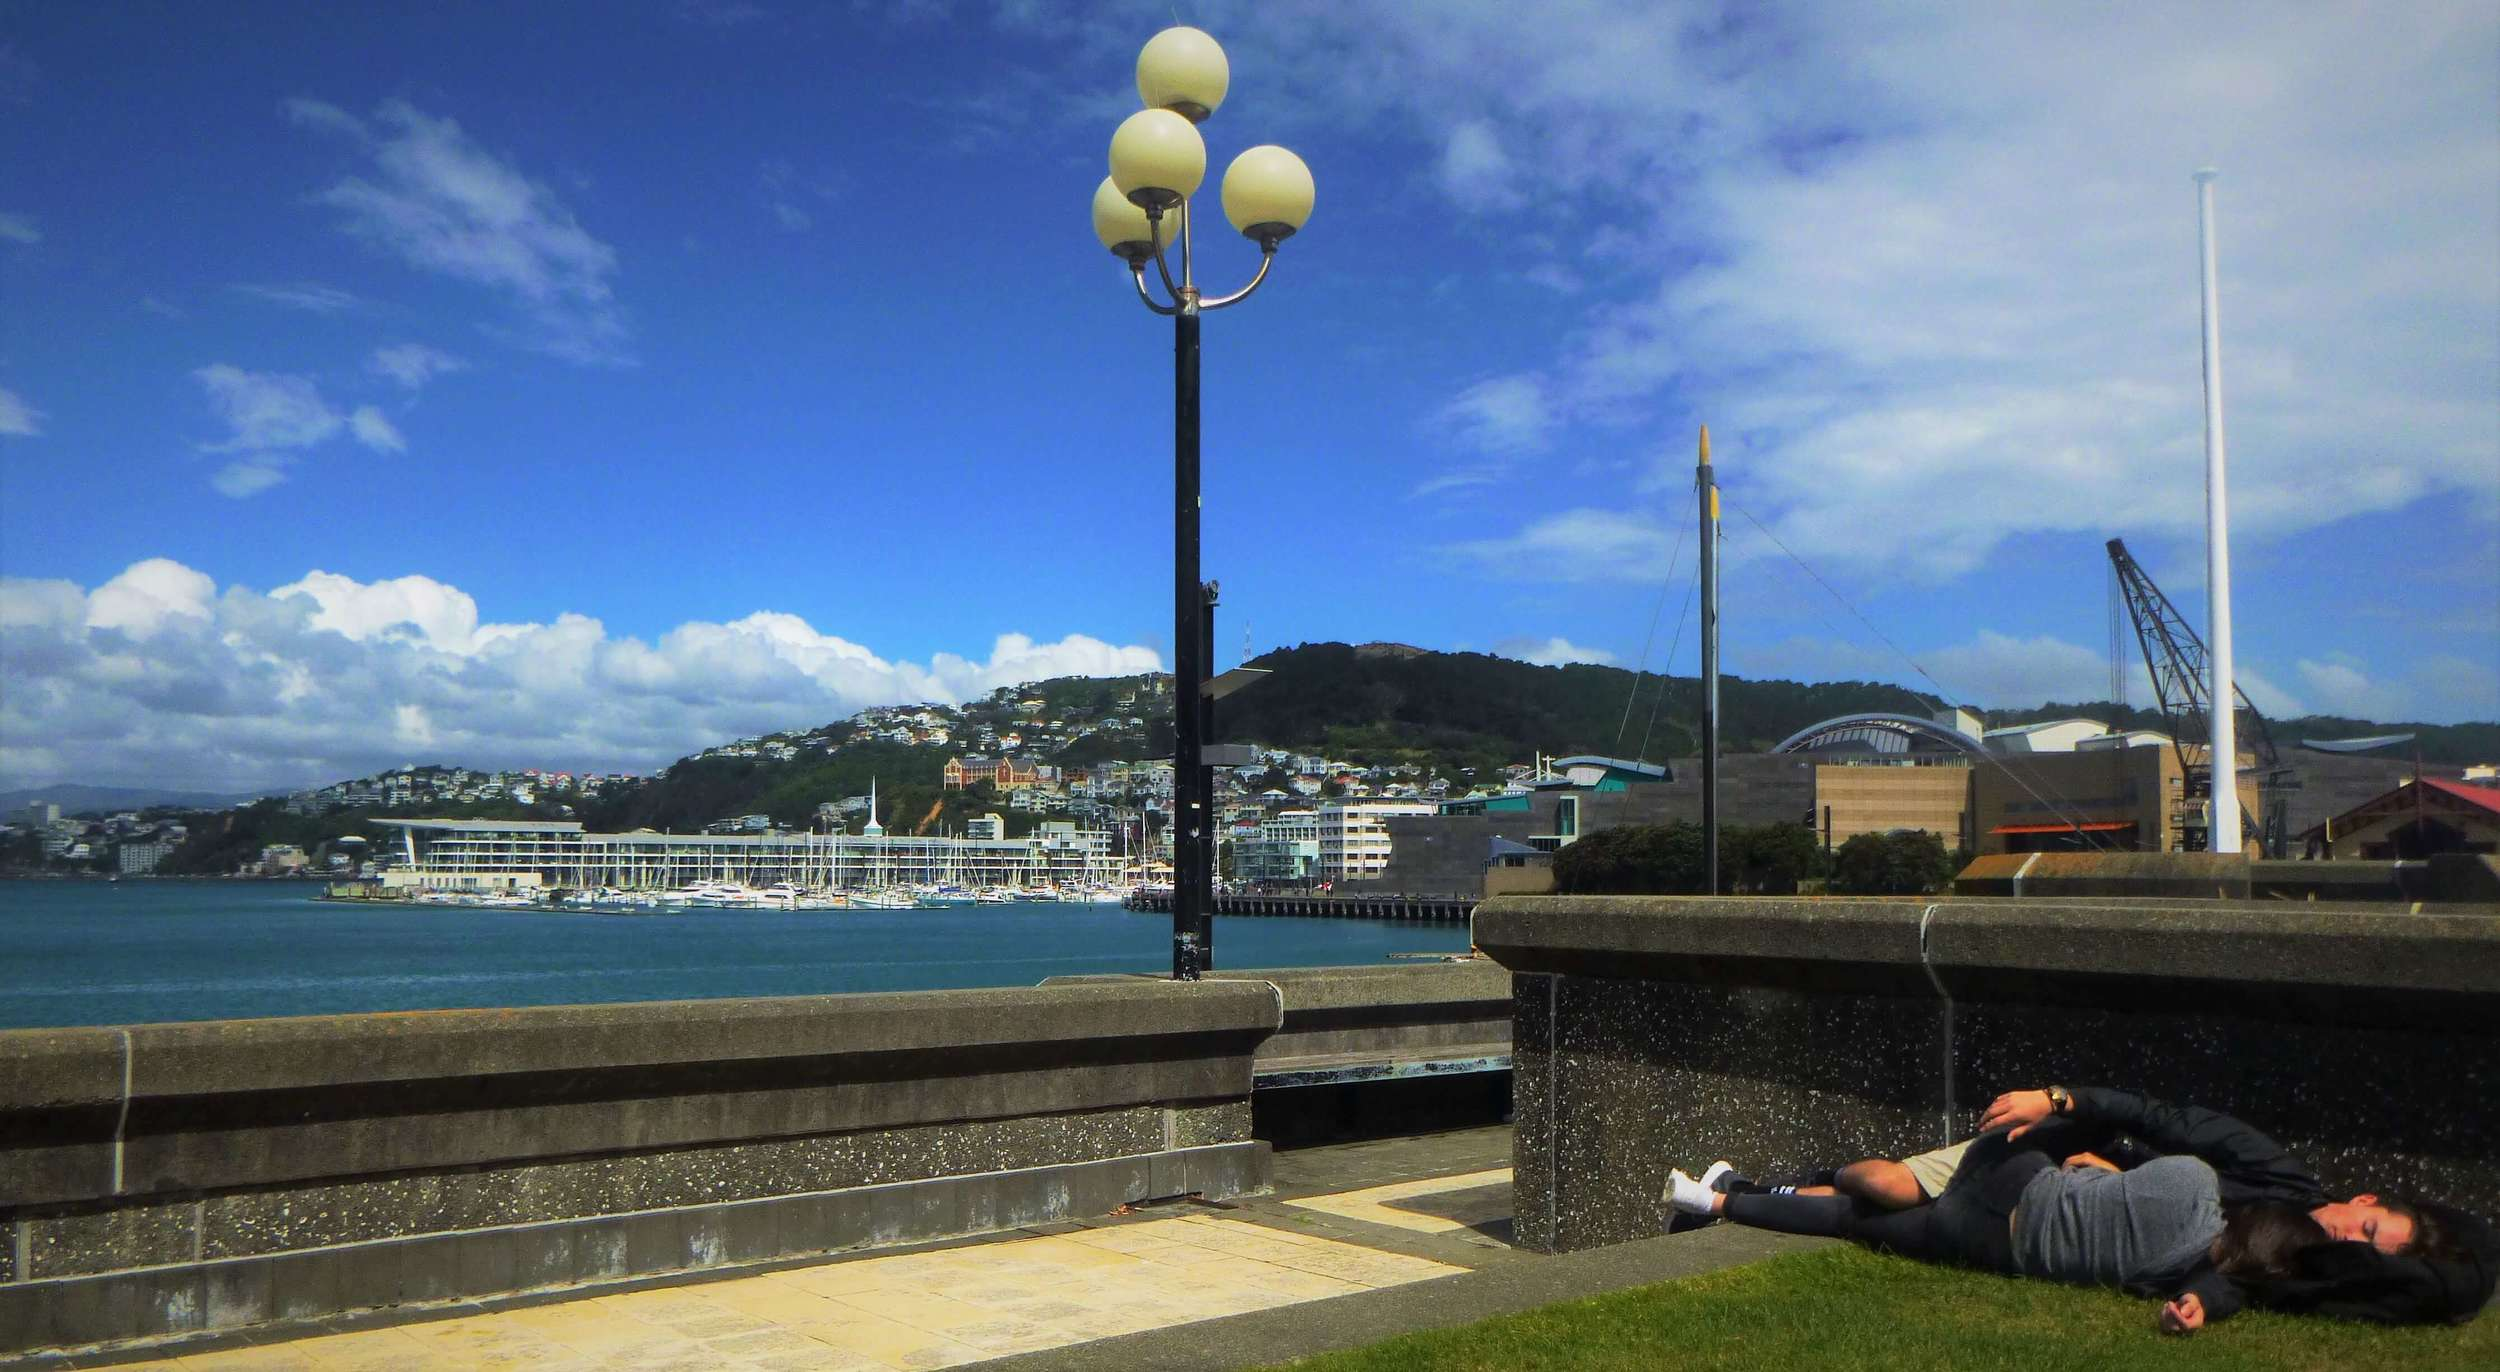 Visiting Wellington's waterfront